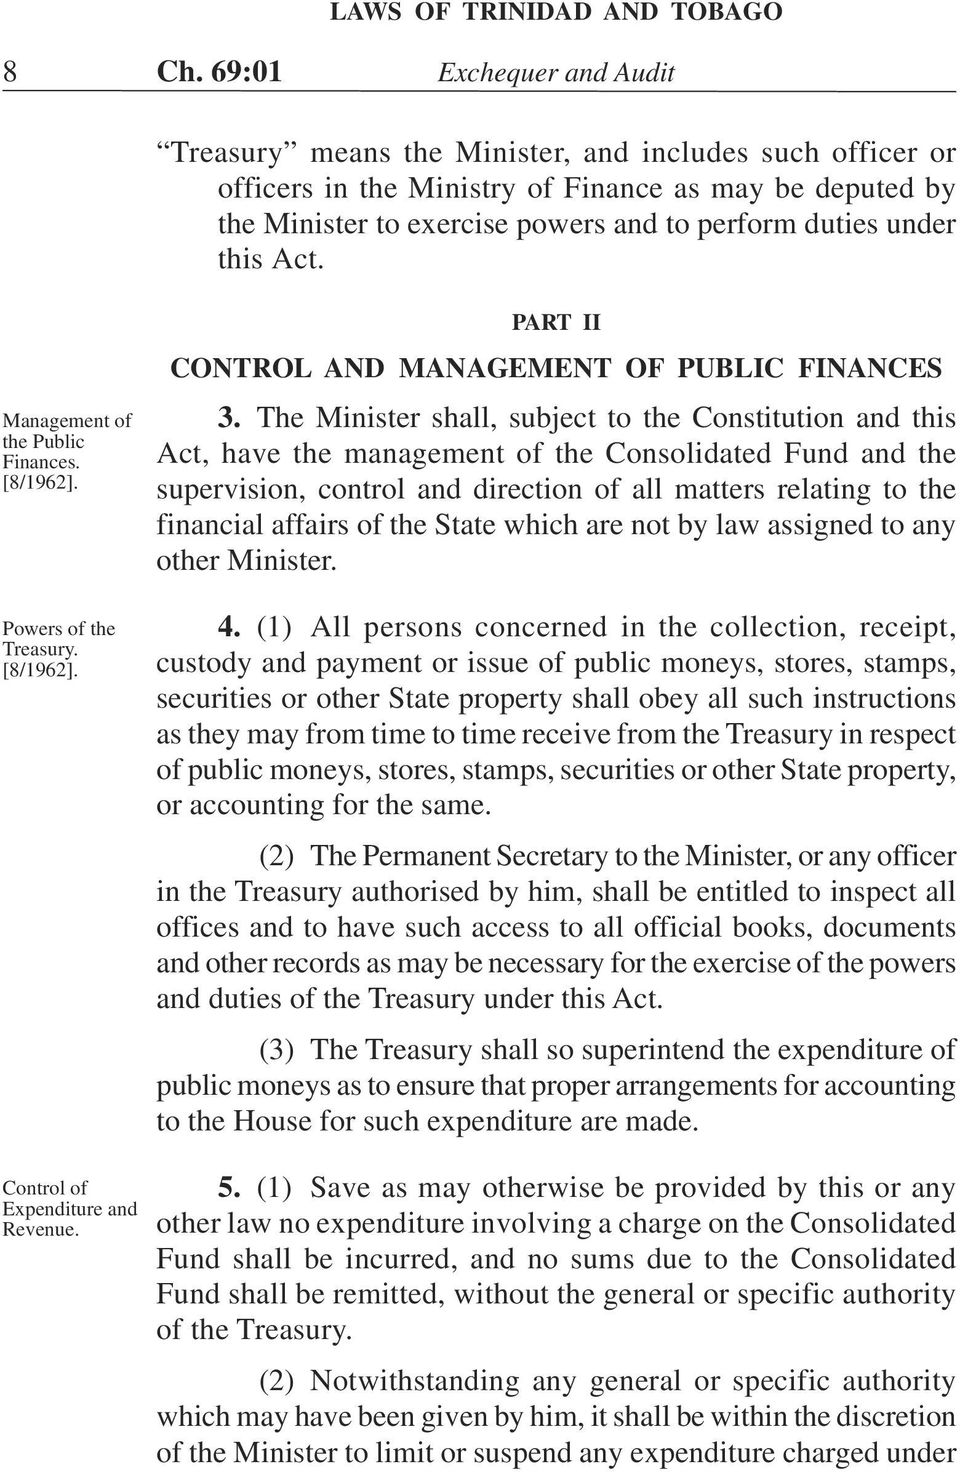 The Minister shall, subject to the Constitution and this Act, have the management of the Consolidated Fund and the supervision, control and direction of all matters relating to the financial affairs